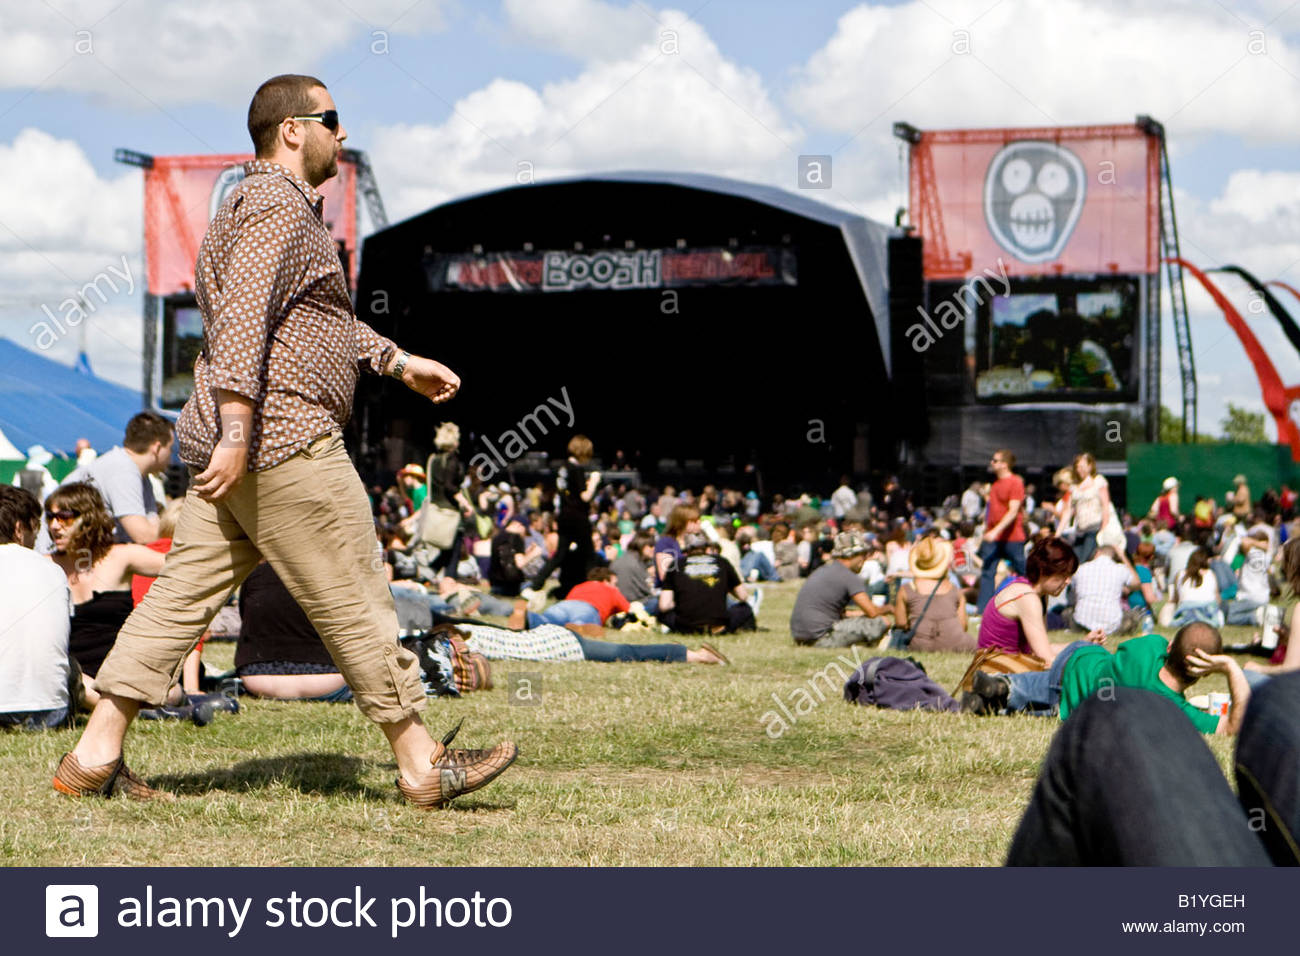 a man strides through the crowds at the mighty boosh festival at the hop farm in kent england - Stock Image